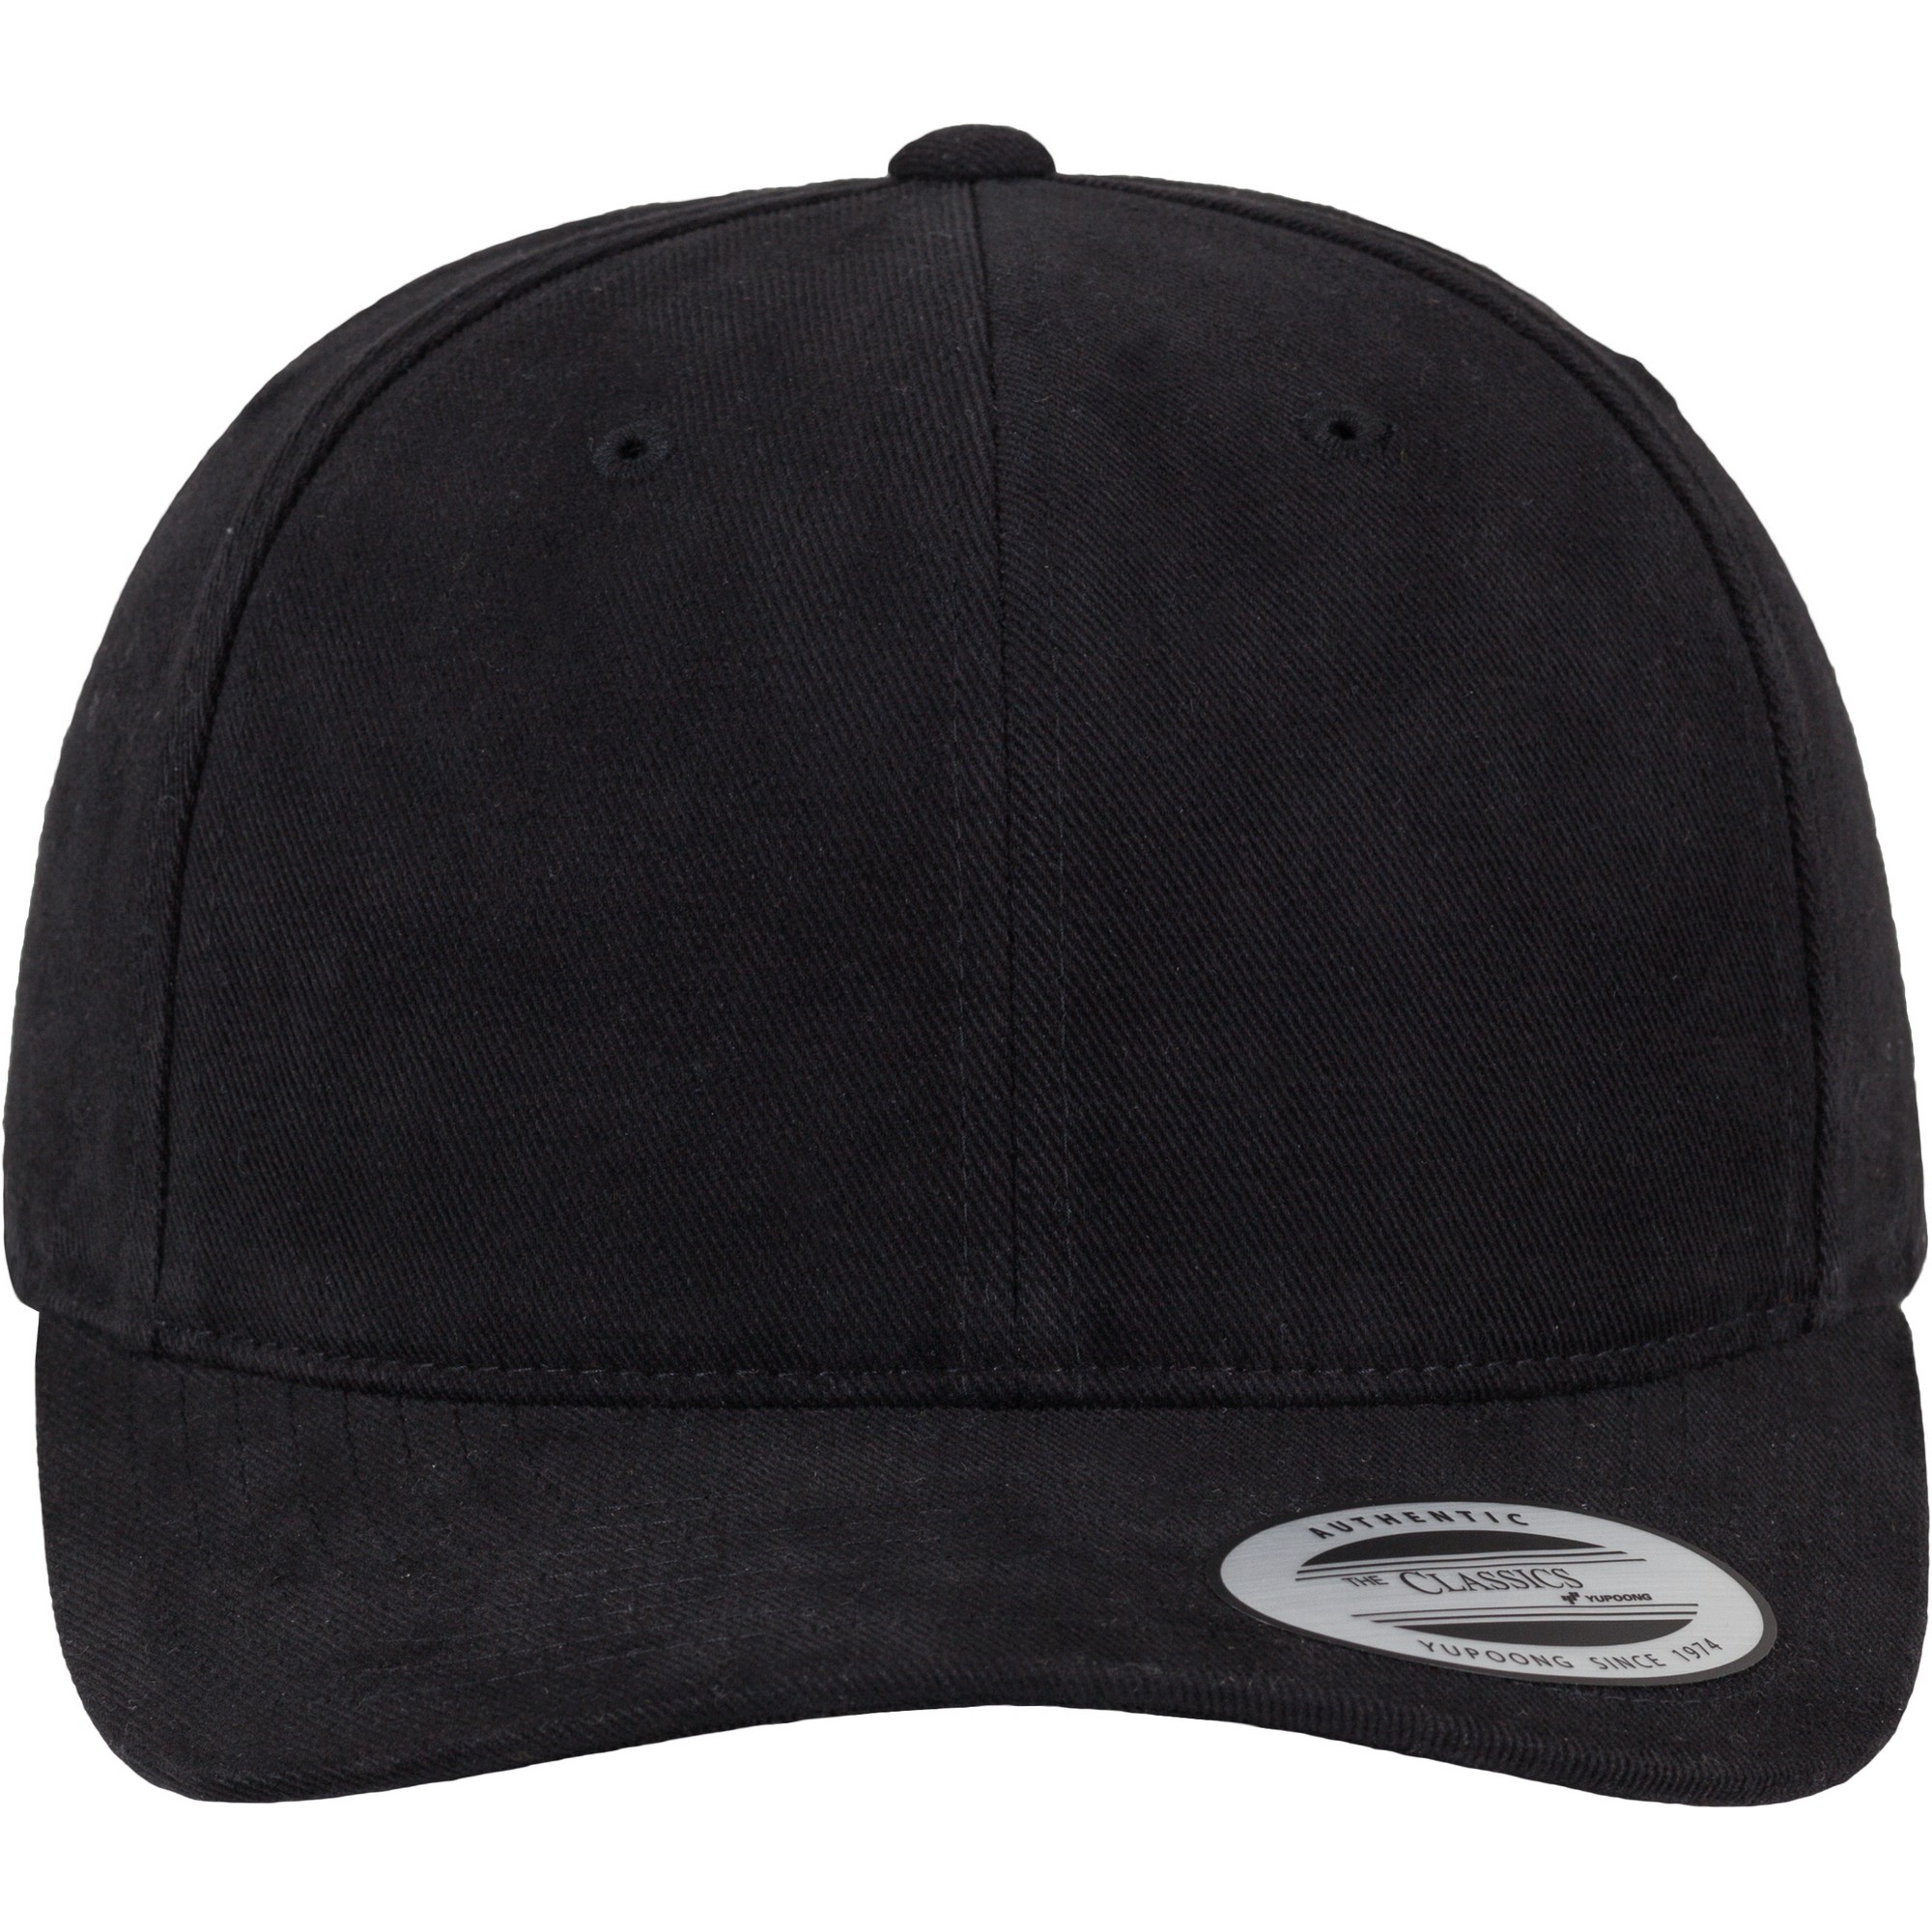 Flexfit By Yupoong Brushed Twill Cap RW7556